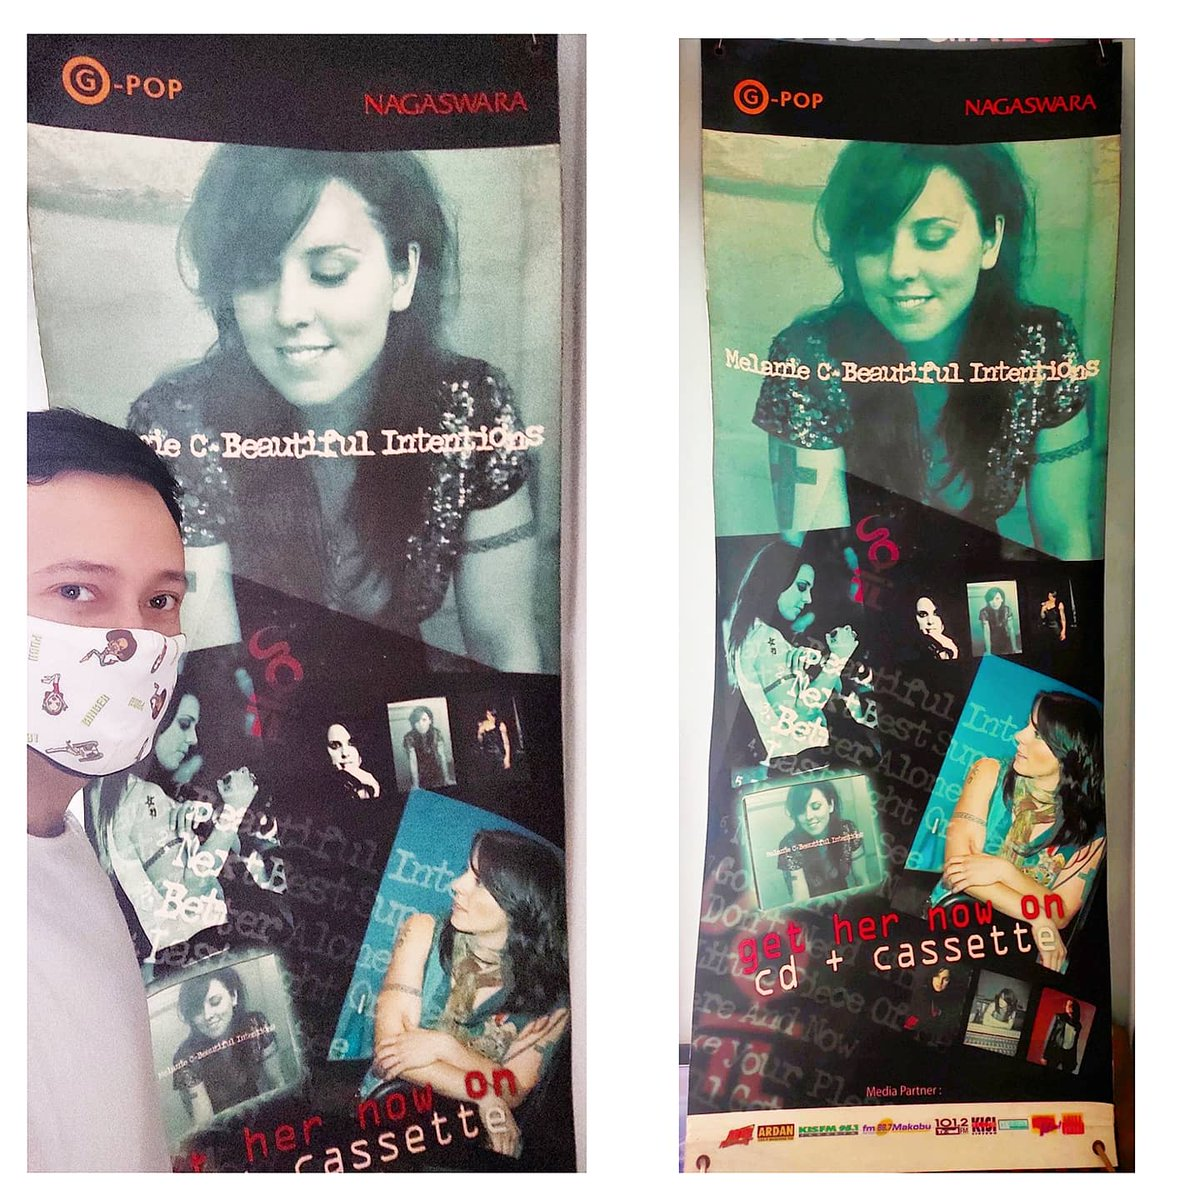 """Super Mega Rare! And the only one in Indonesia 🇲🇨 ✌️Official & Original from 2005 @melaniecmusic Promotional Vinyl Banner (150cm x 35cm) for her 3rd Studio Album """"Beautiful Intentions"""" from @nagaswaraofficial & with various Indonesia Media Partners. #melaniec #spicegirls https://t.co/kH2Ixbx7BB"""